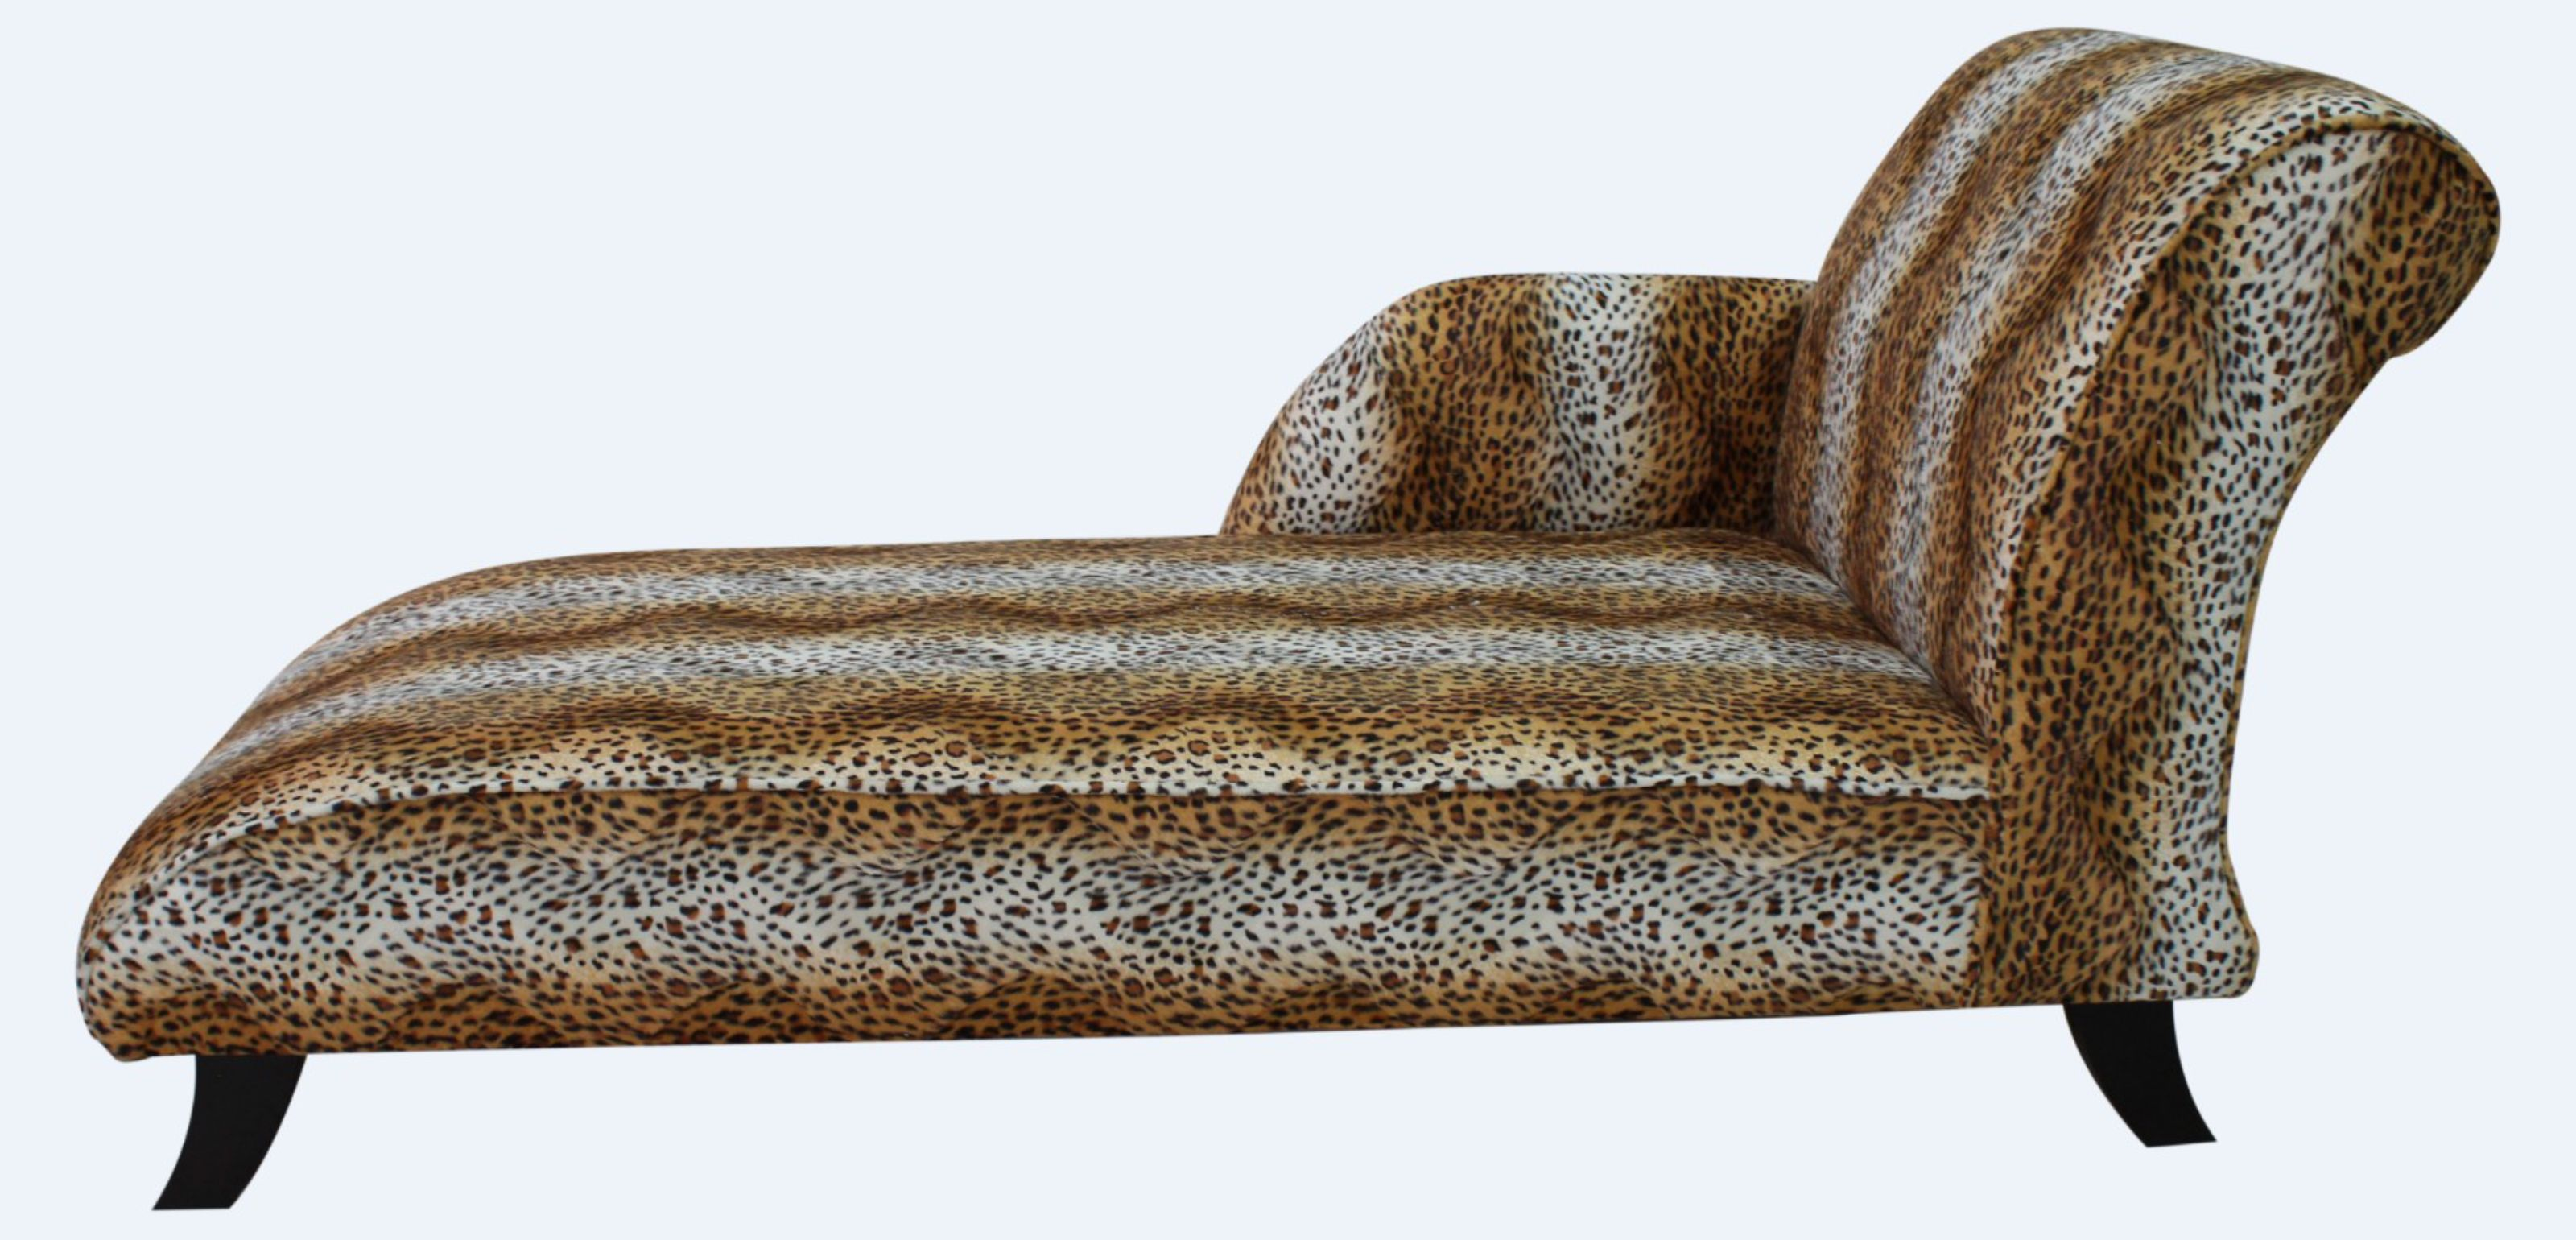 Peachy Cheetah Chaise Lounge Sofa Seat Free Warranty Designersofas4U Gmtry Best Dining Table And Chair Ideas Images Gmtryco